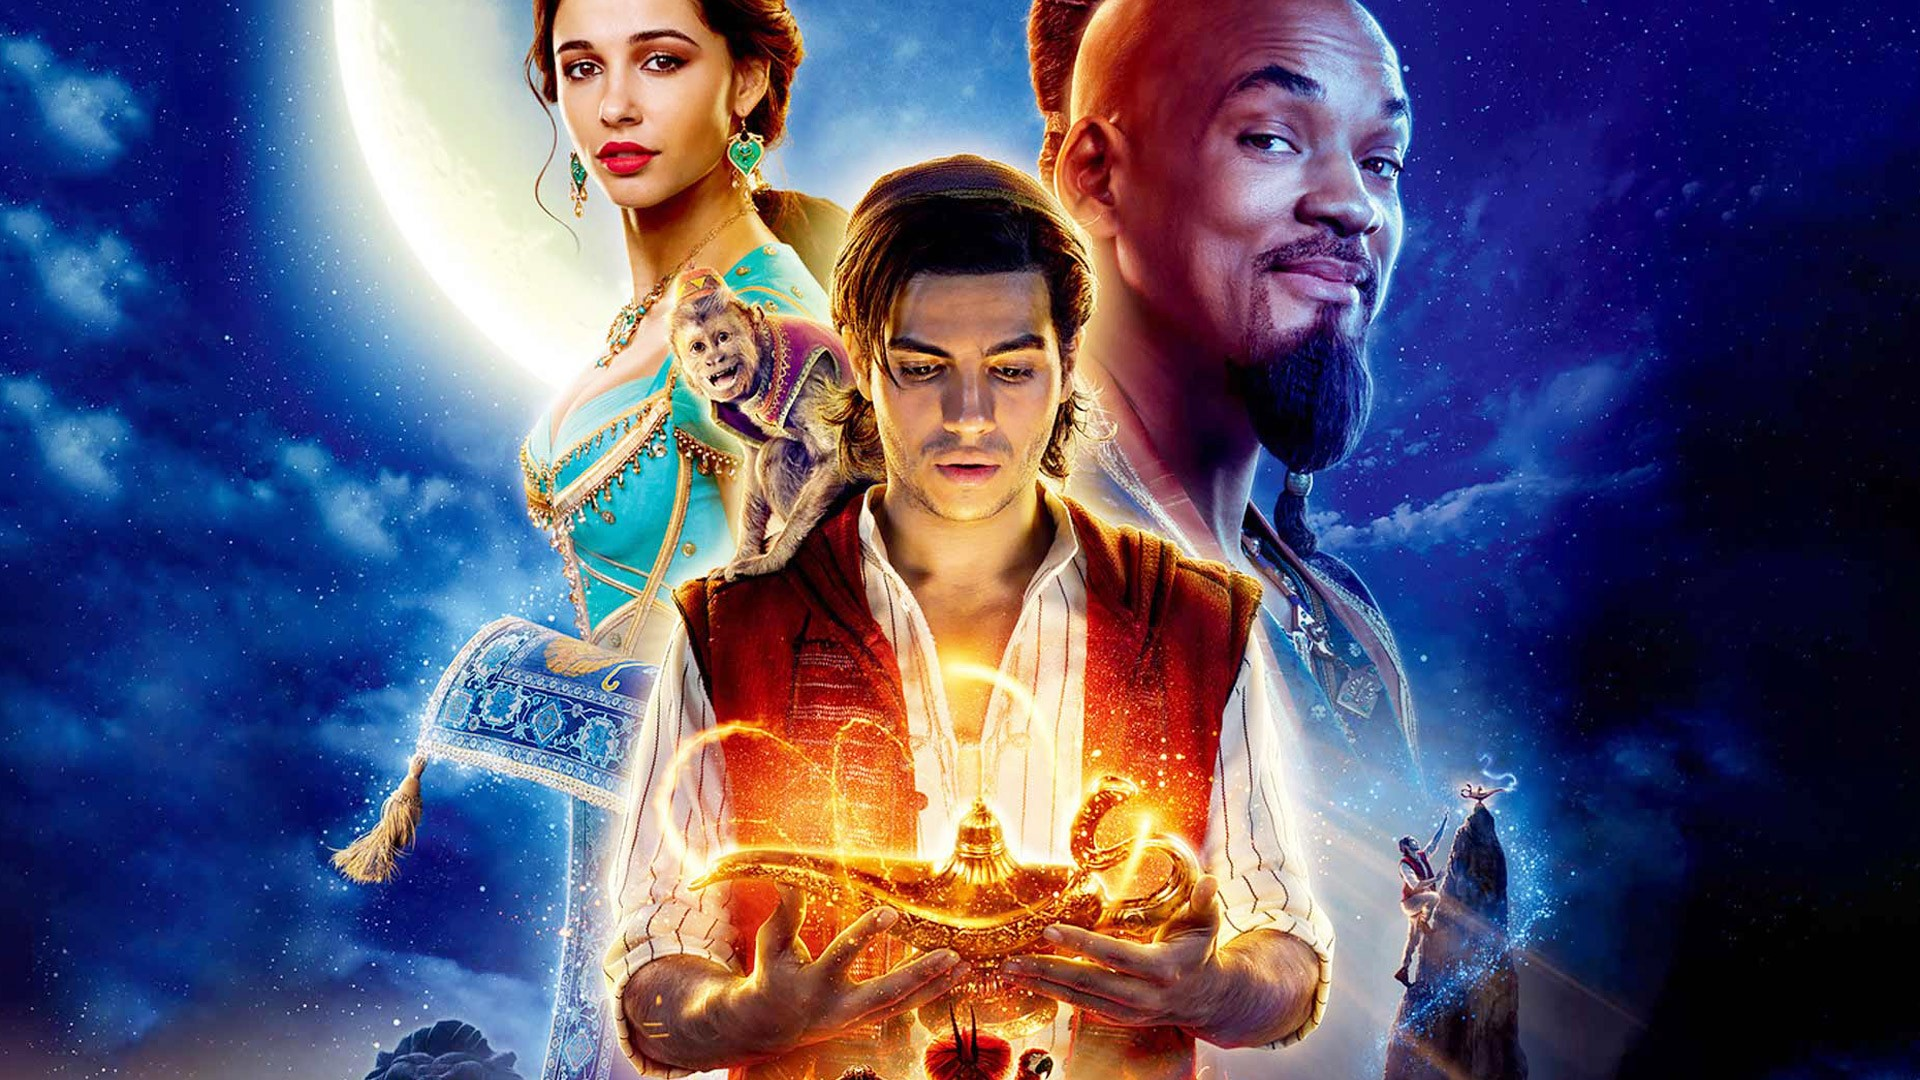 Drive-In Movie: Aladdin – Keeping Kids Connected